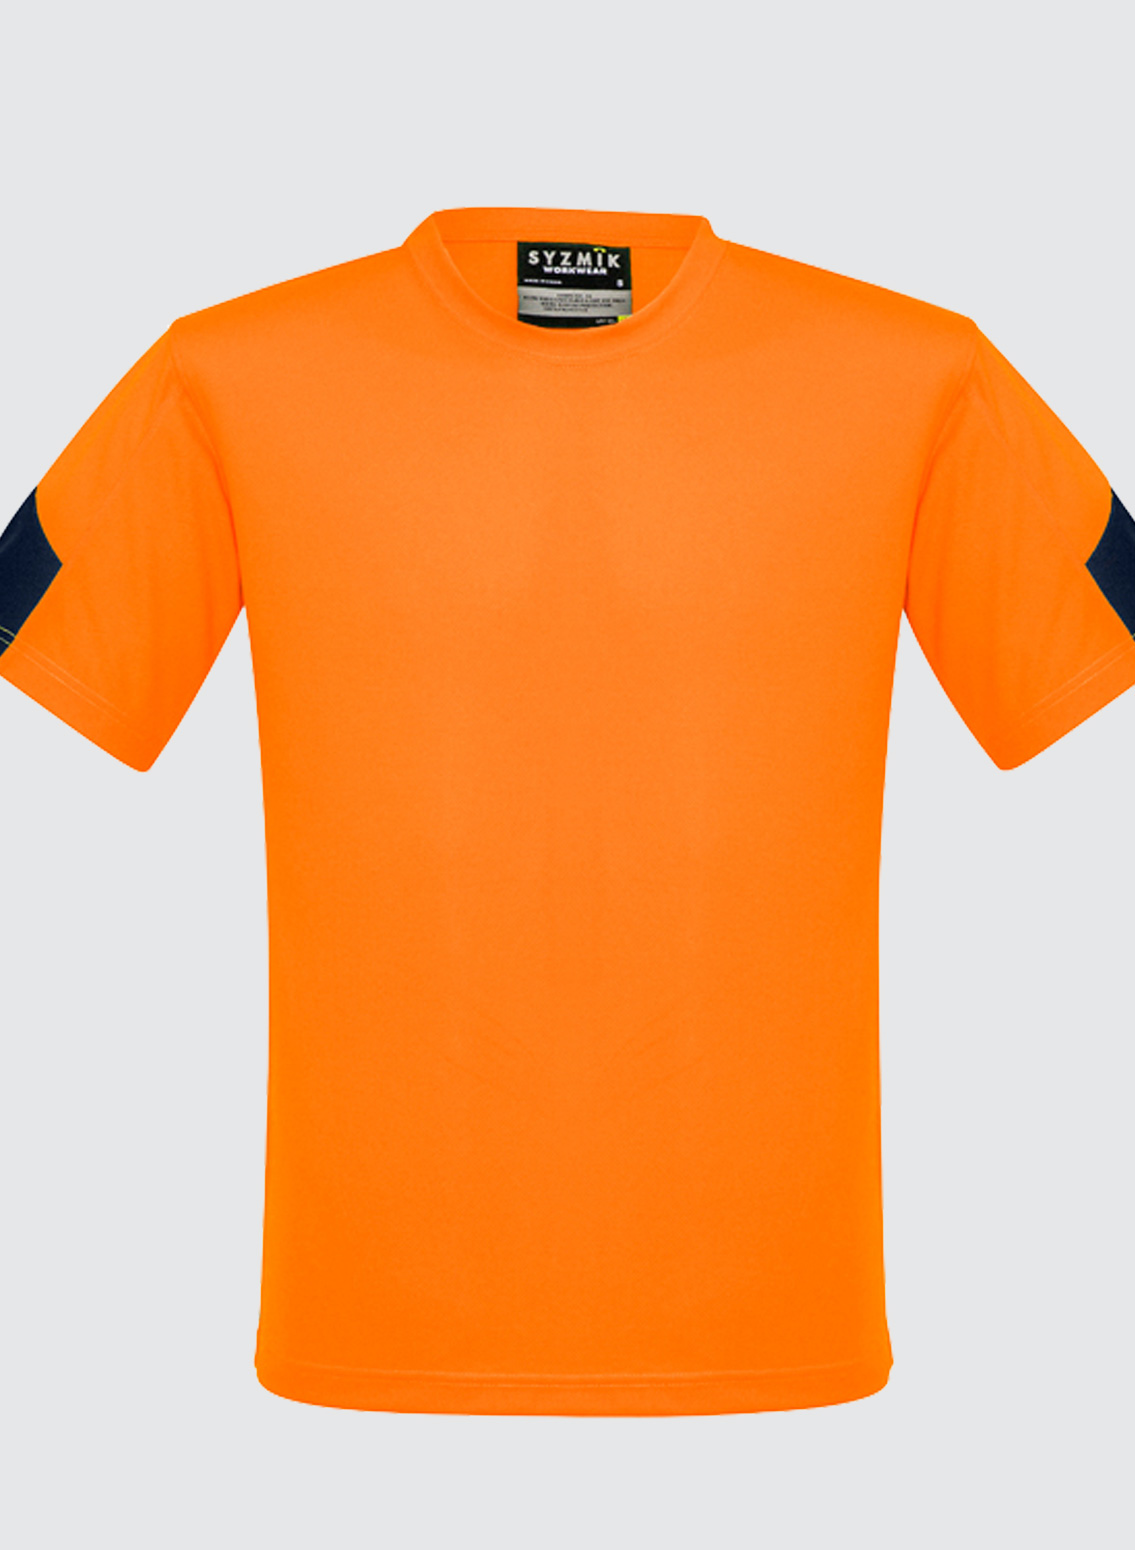 Zw505 mens hi vis squad t shirt business image group for Hi vis t shirt printing